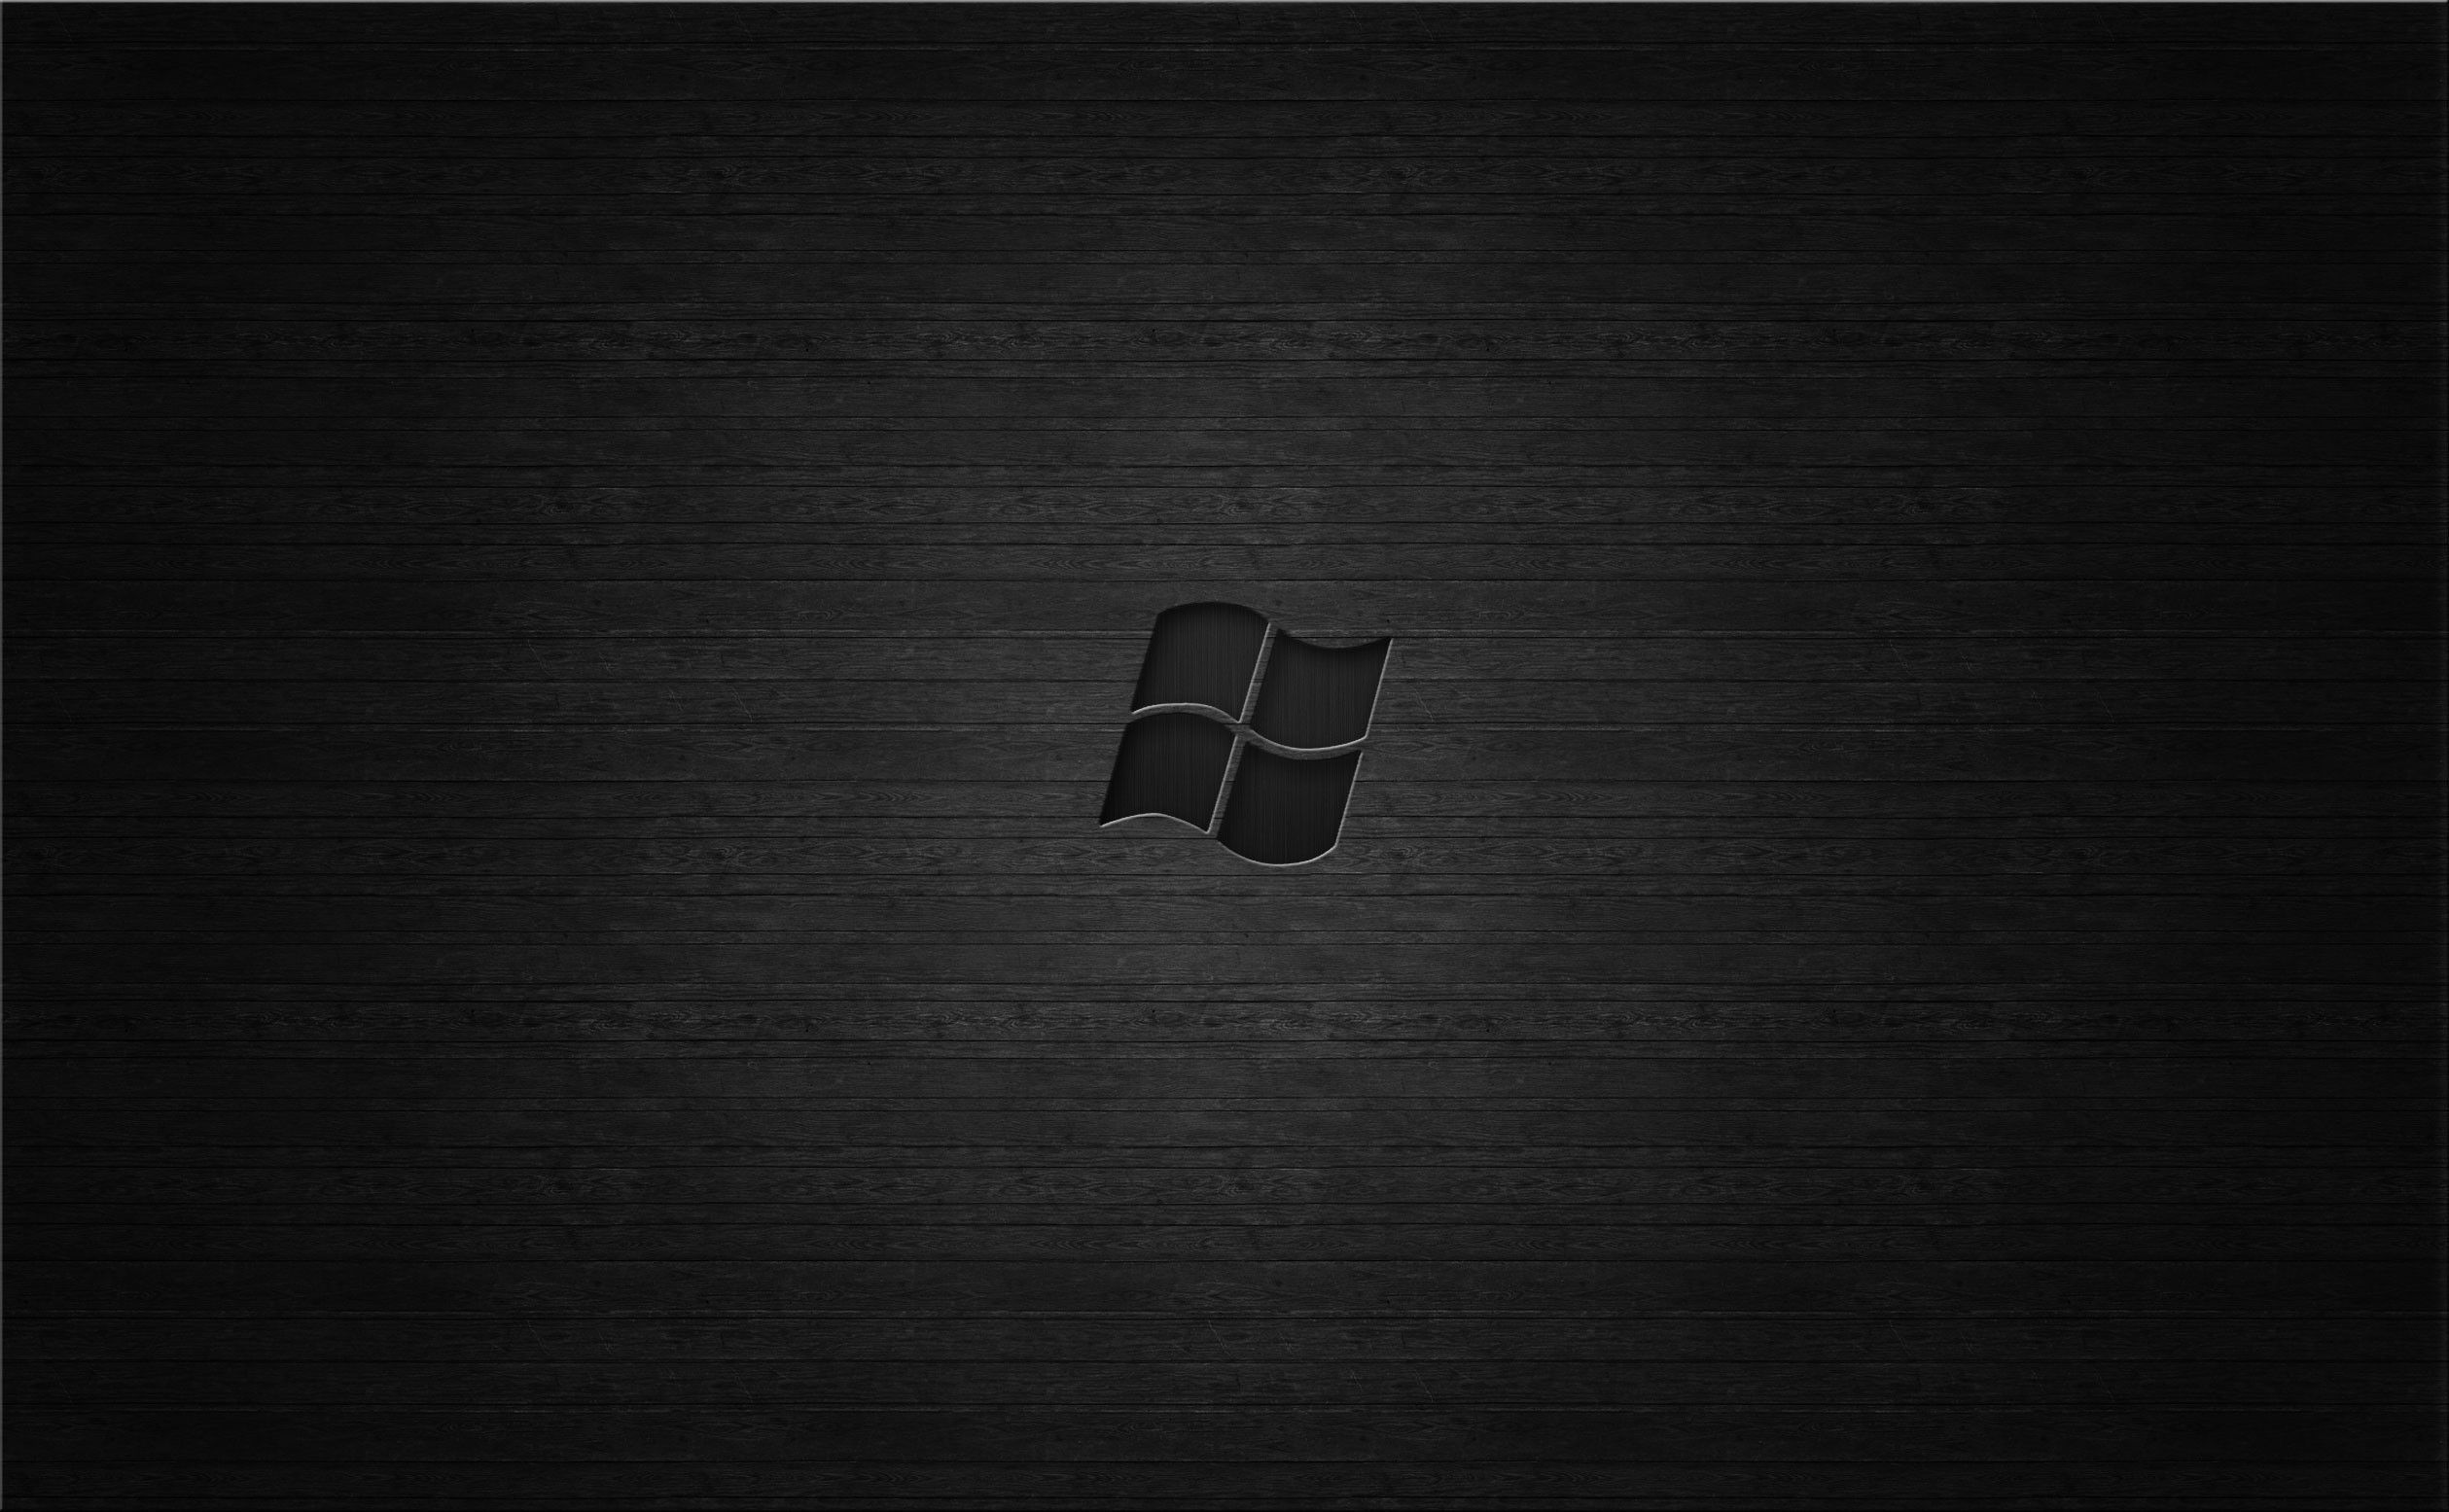 Are You Searching For Windows Wallpaper Hd Black Right Here Are 10 Ideal And Most Curre Minimalist Desktop Wallpaper Desktop Wallpaper Black Windows Wallpaper